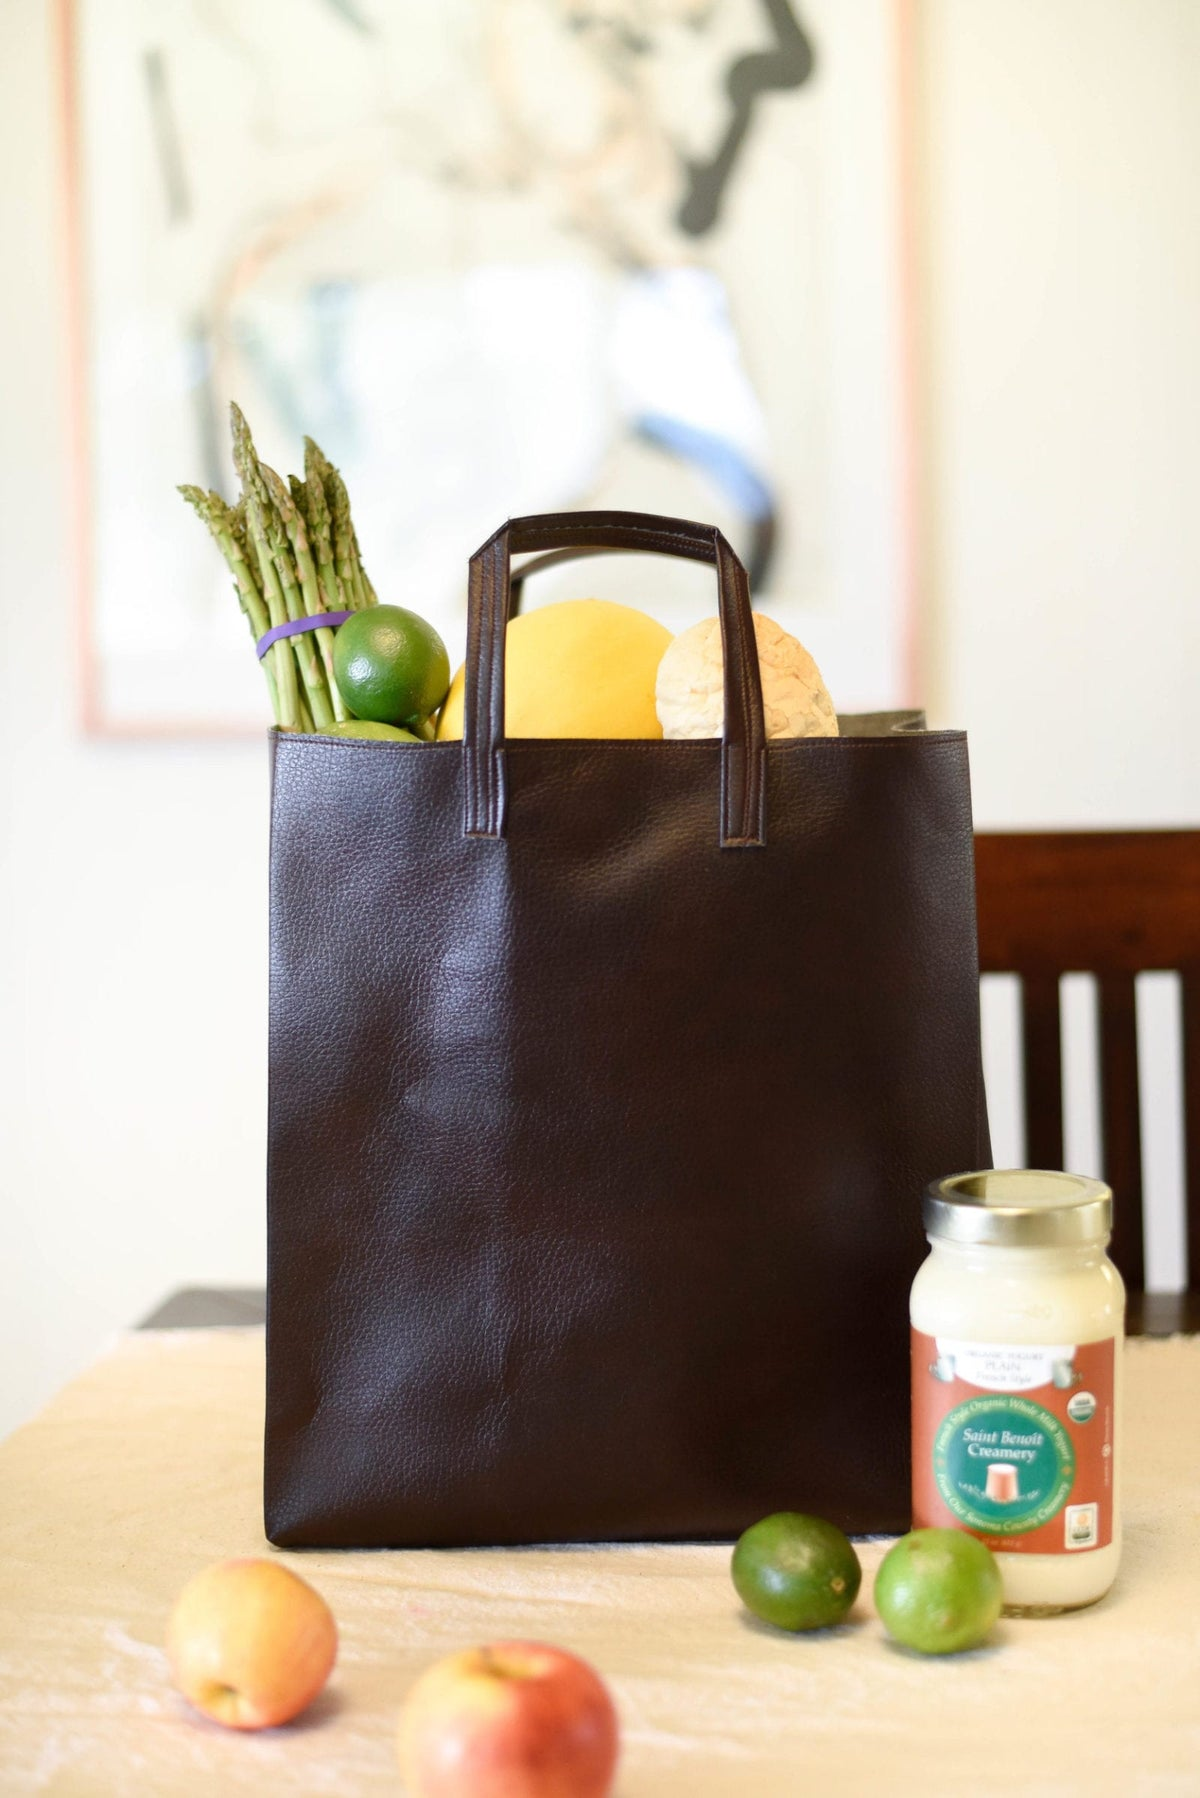 Machine Sewing Leather 101 :: The Vegan Leather Tote